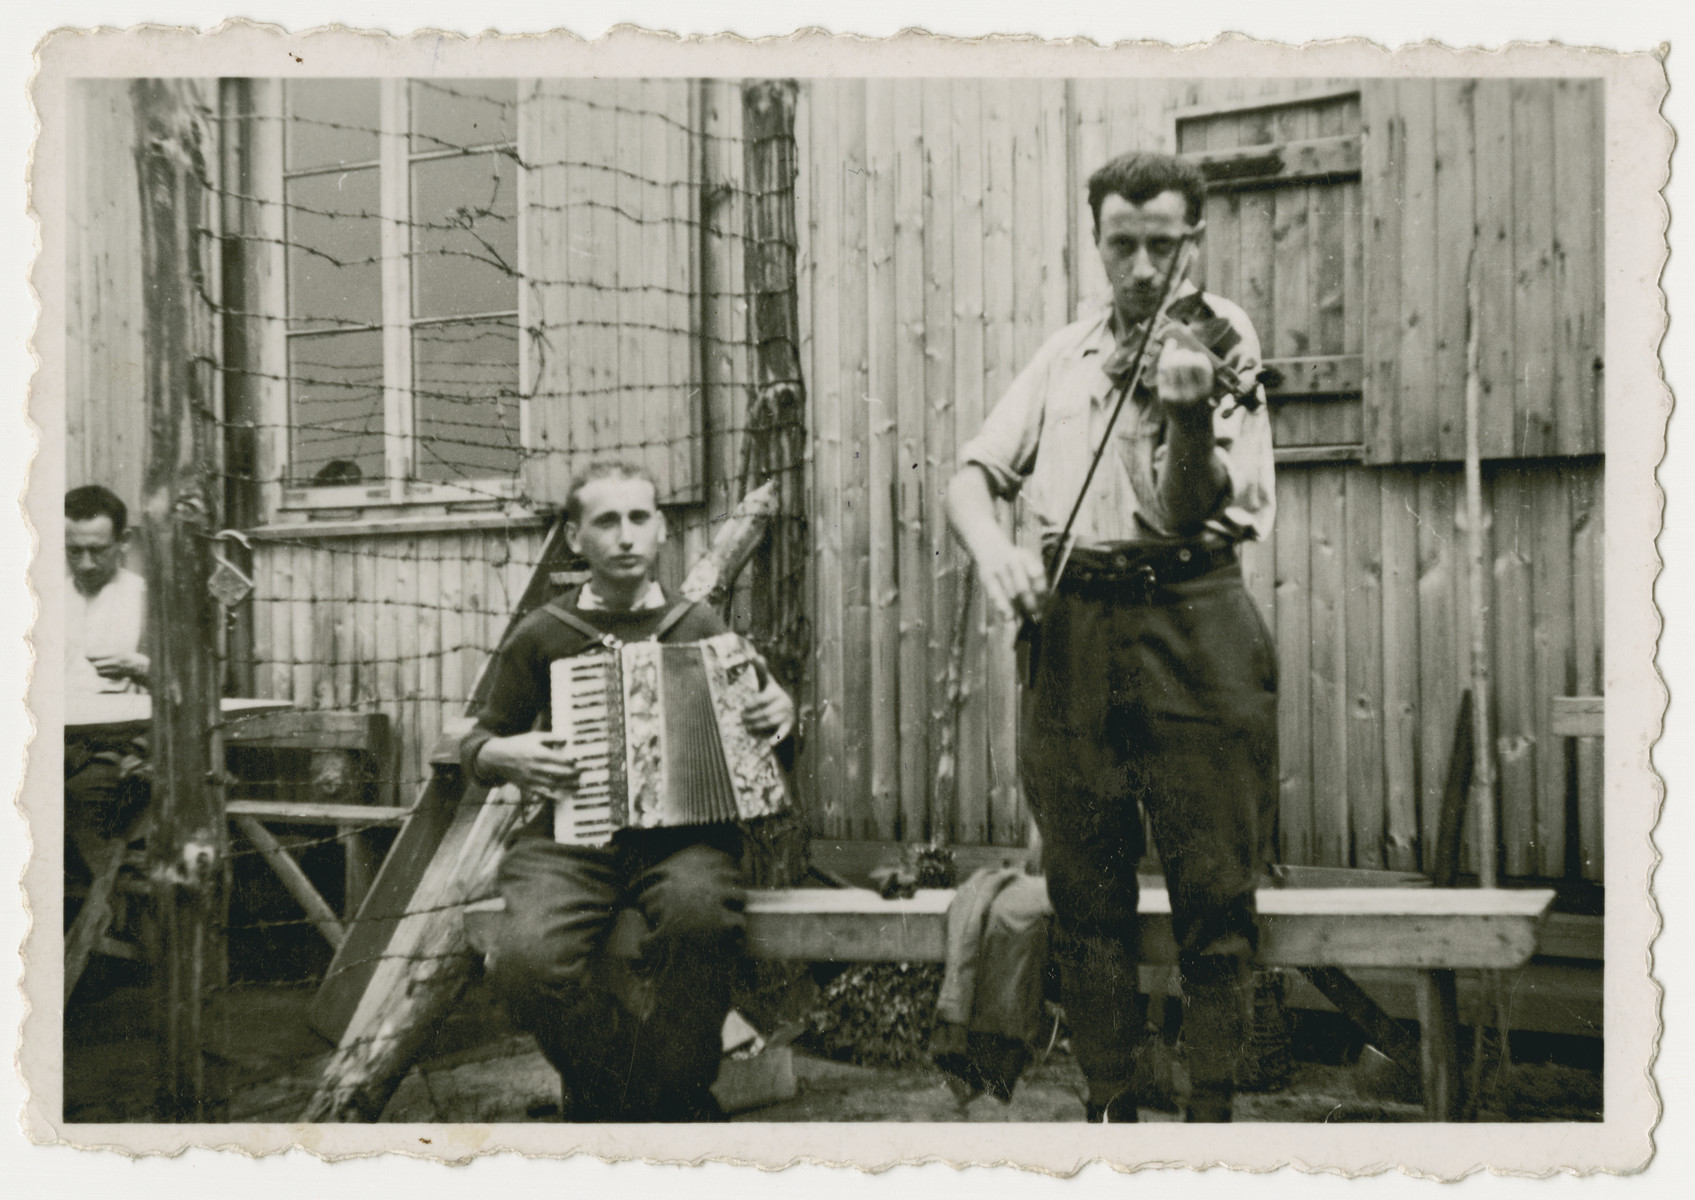 Two Belgian POWs play music outside a barrack in Stalag 10 C.